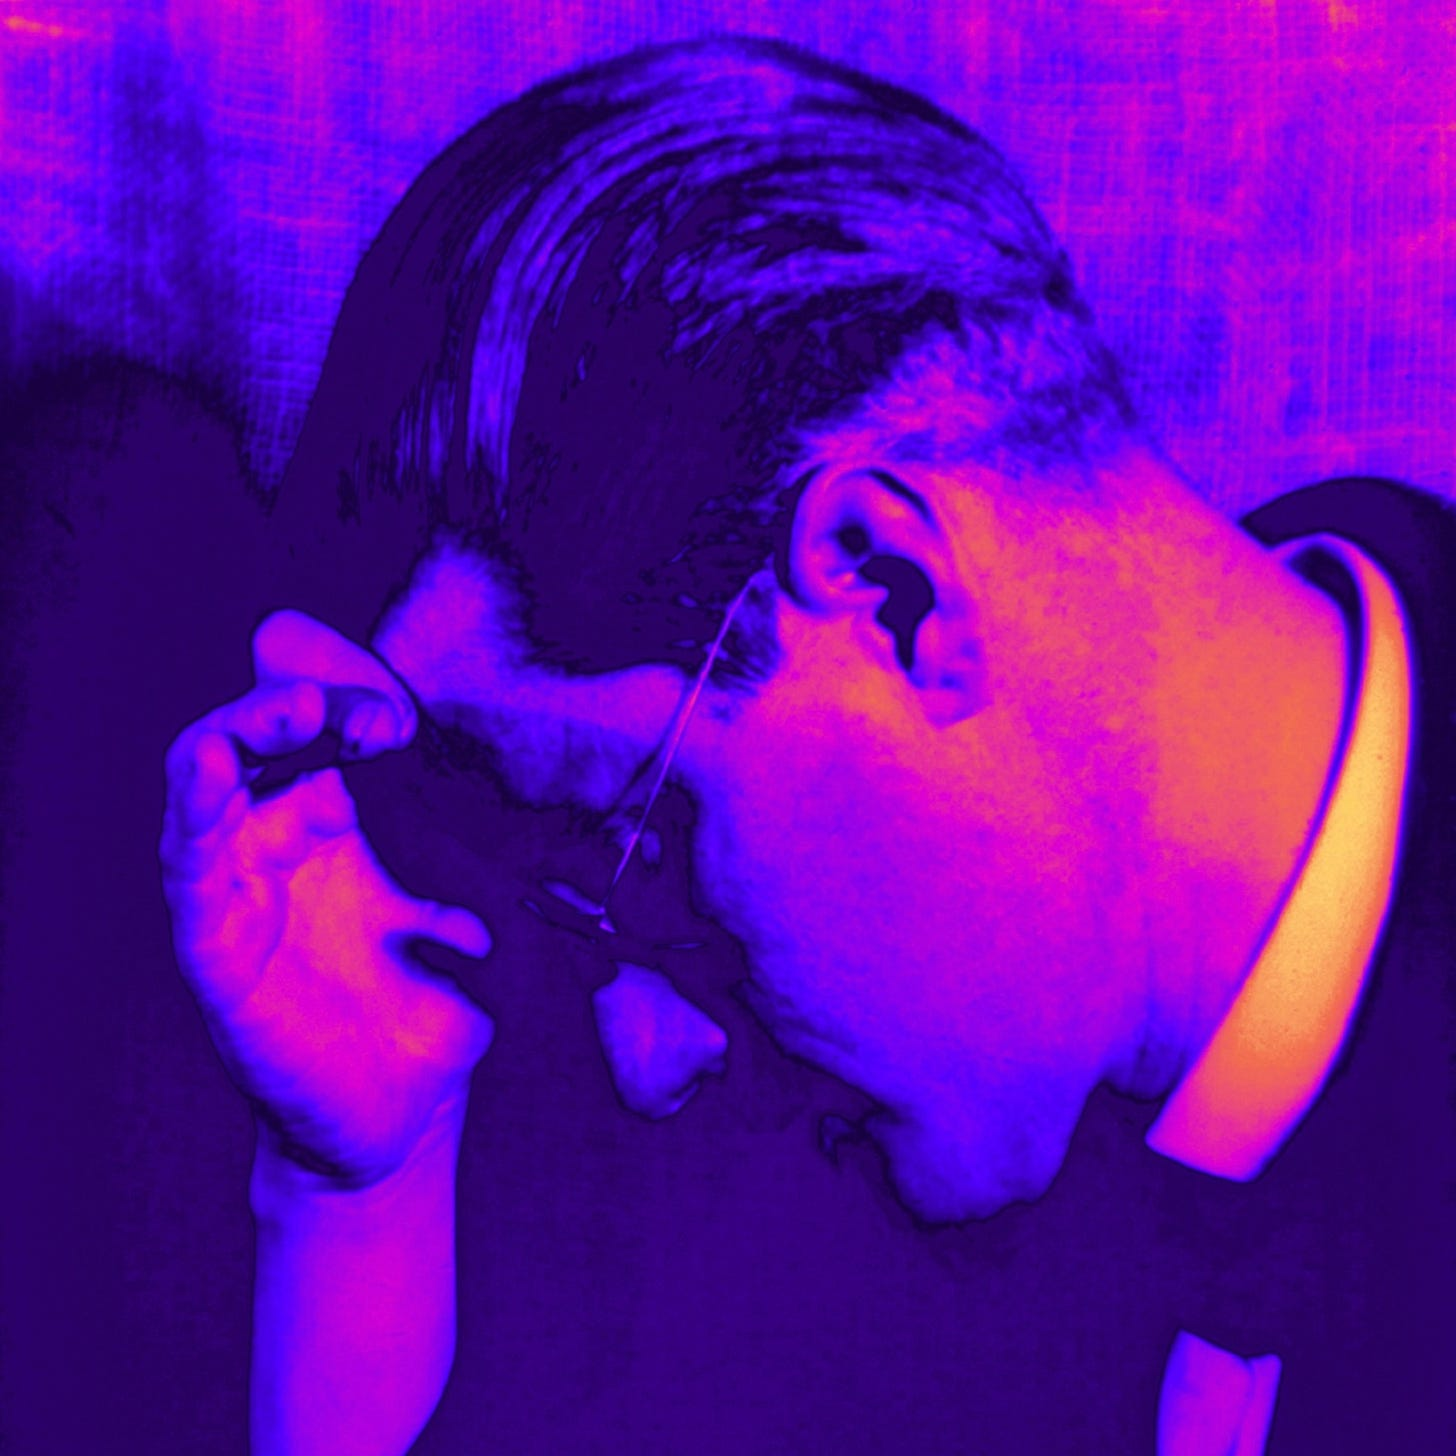 James Joyce with his head in his hand